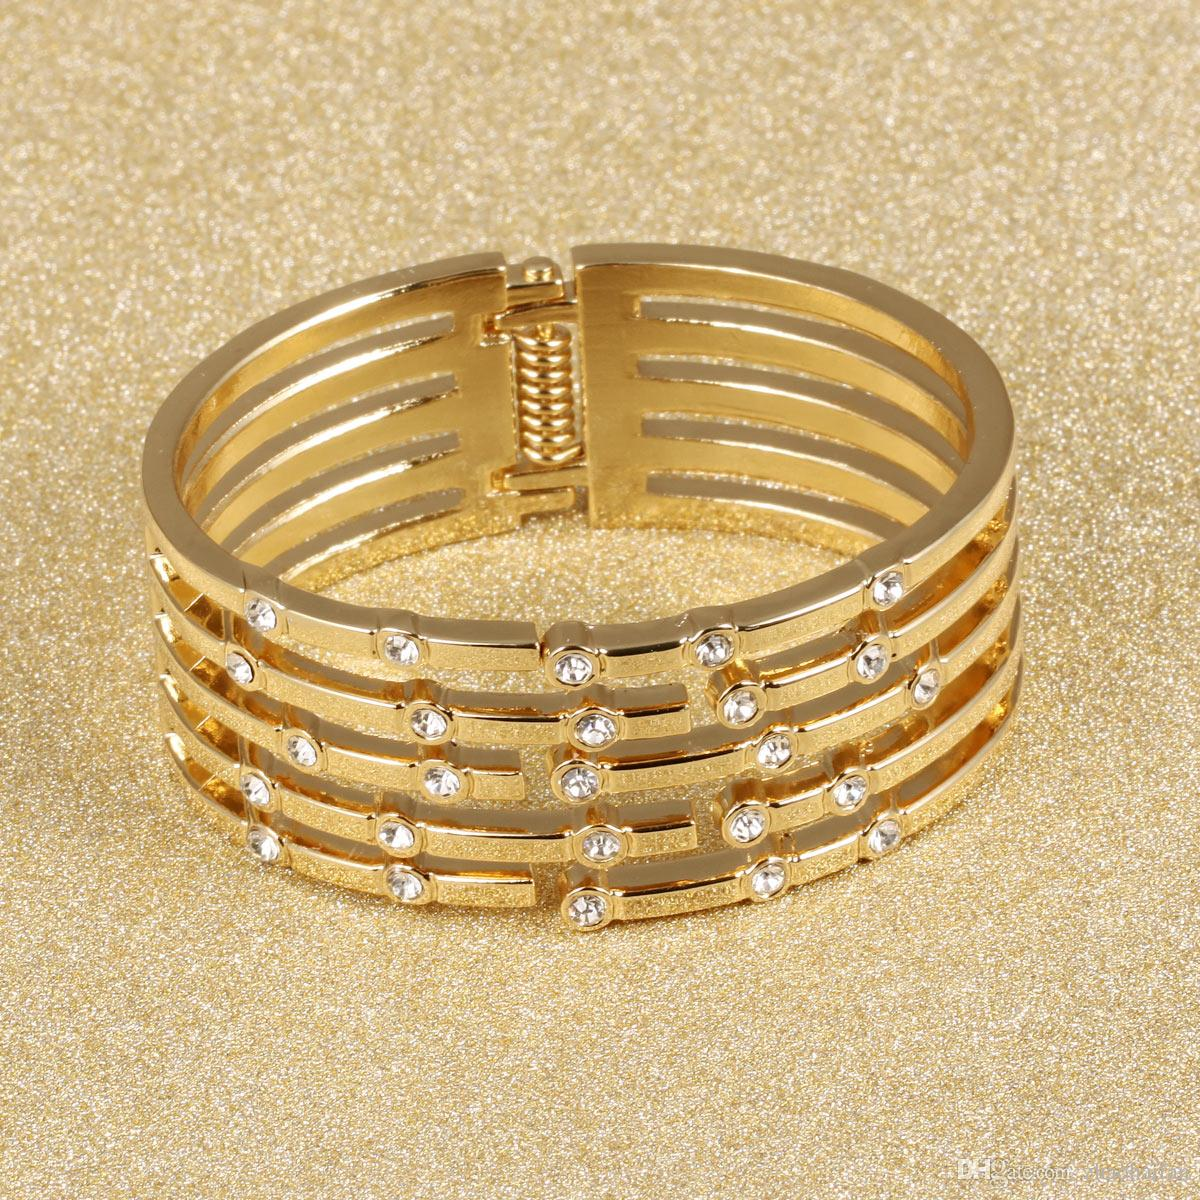 new jewelry silver open pulseiras bracelets leaves feminina bangles bracelet women bangle plated item from thin pulseira fashion for cuff in stretch gold design